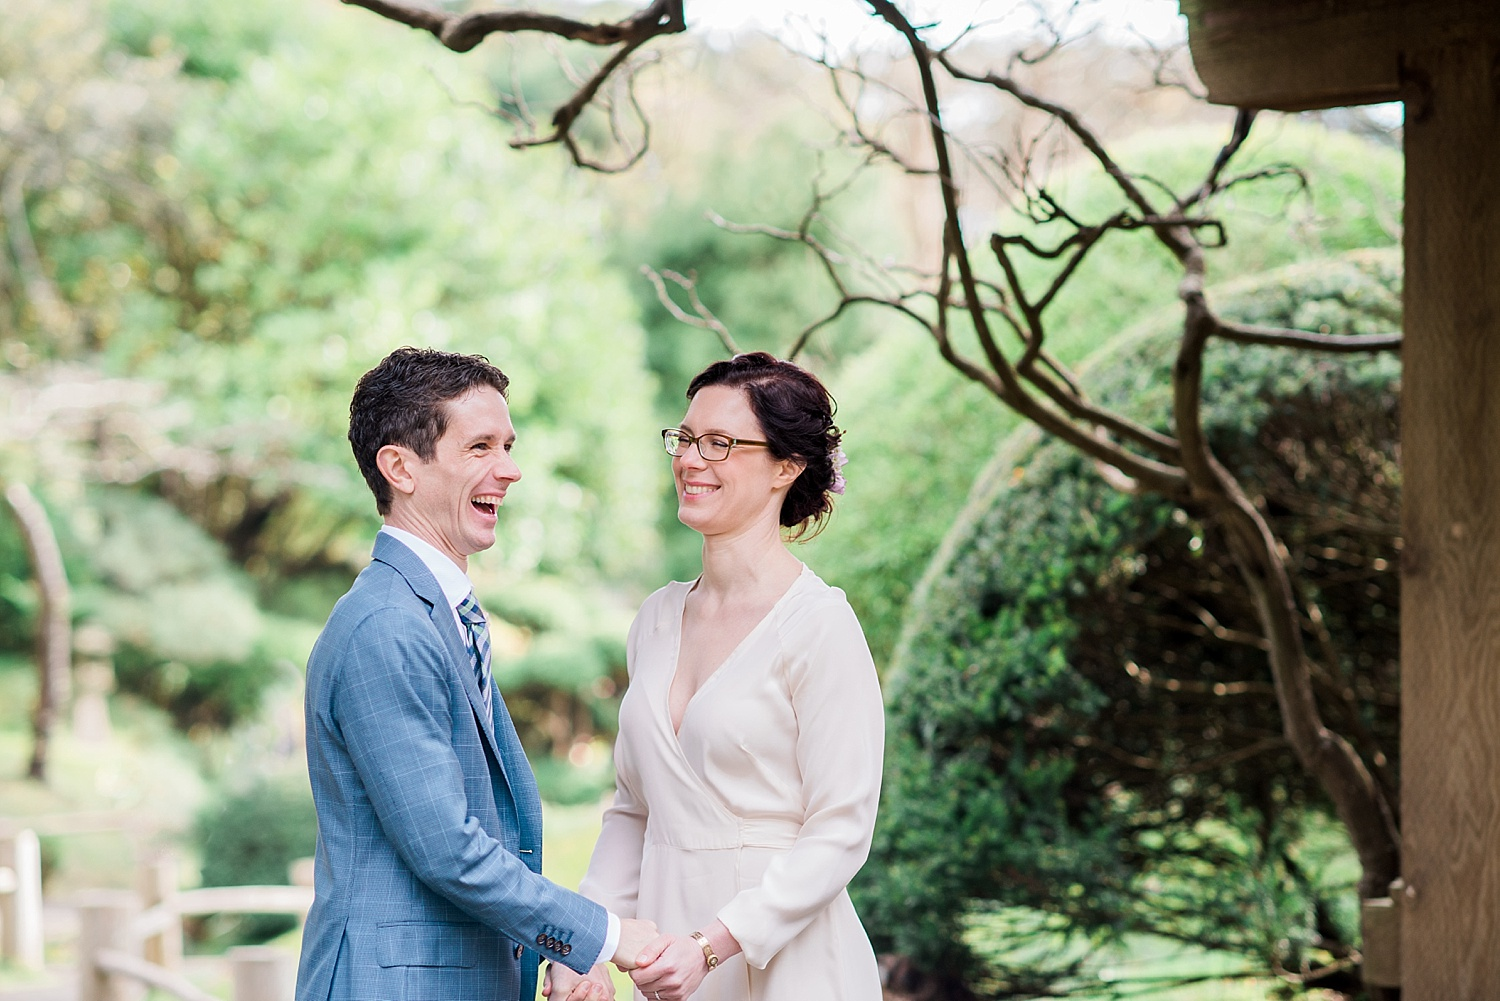 jennifer-jayn-photography-san-francisco-japanese-tea-garden-elopement_0032.jpg